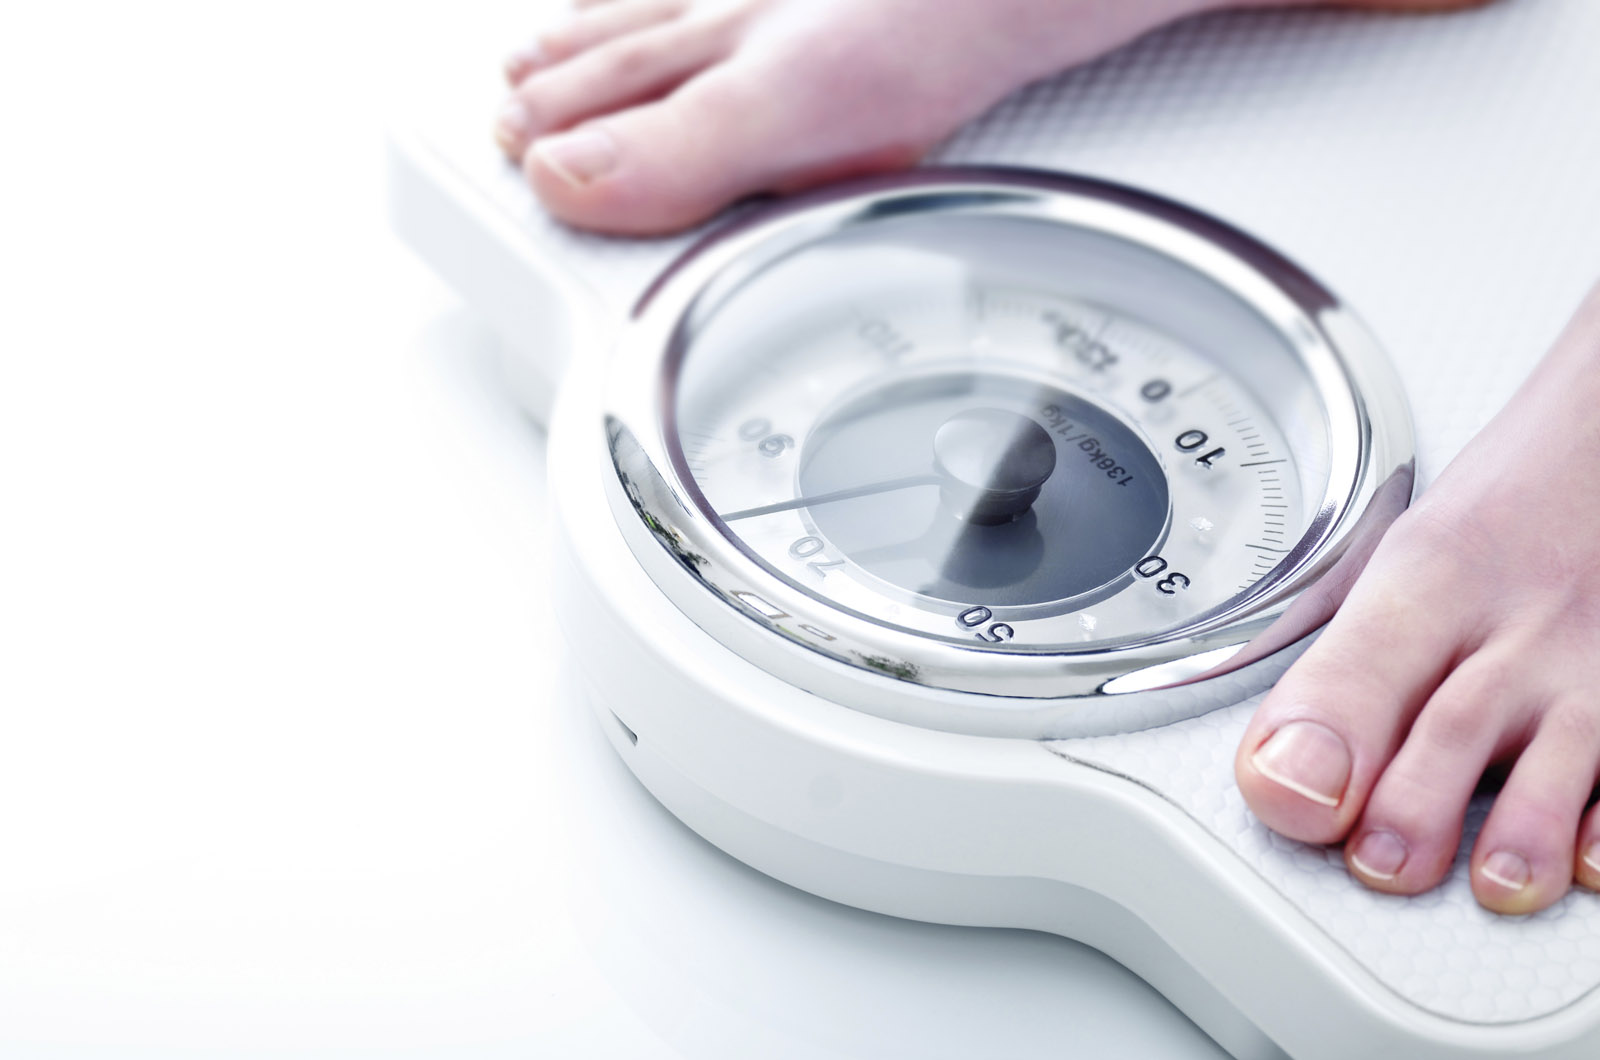 For some cancers, overweight patients have greater survival rates